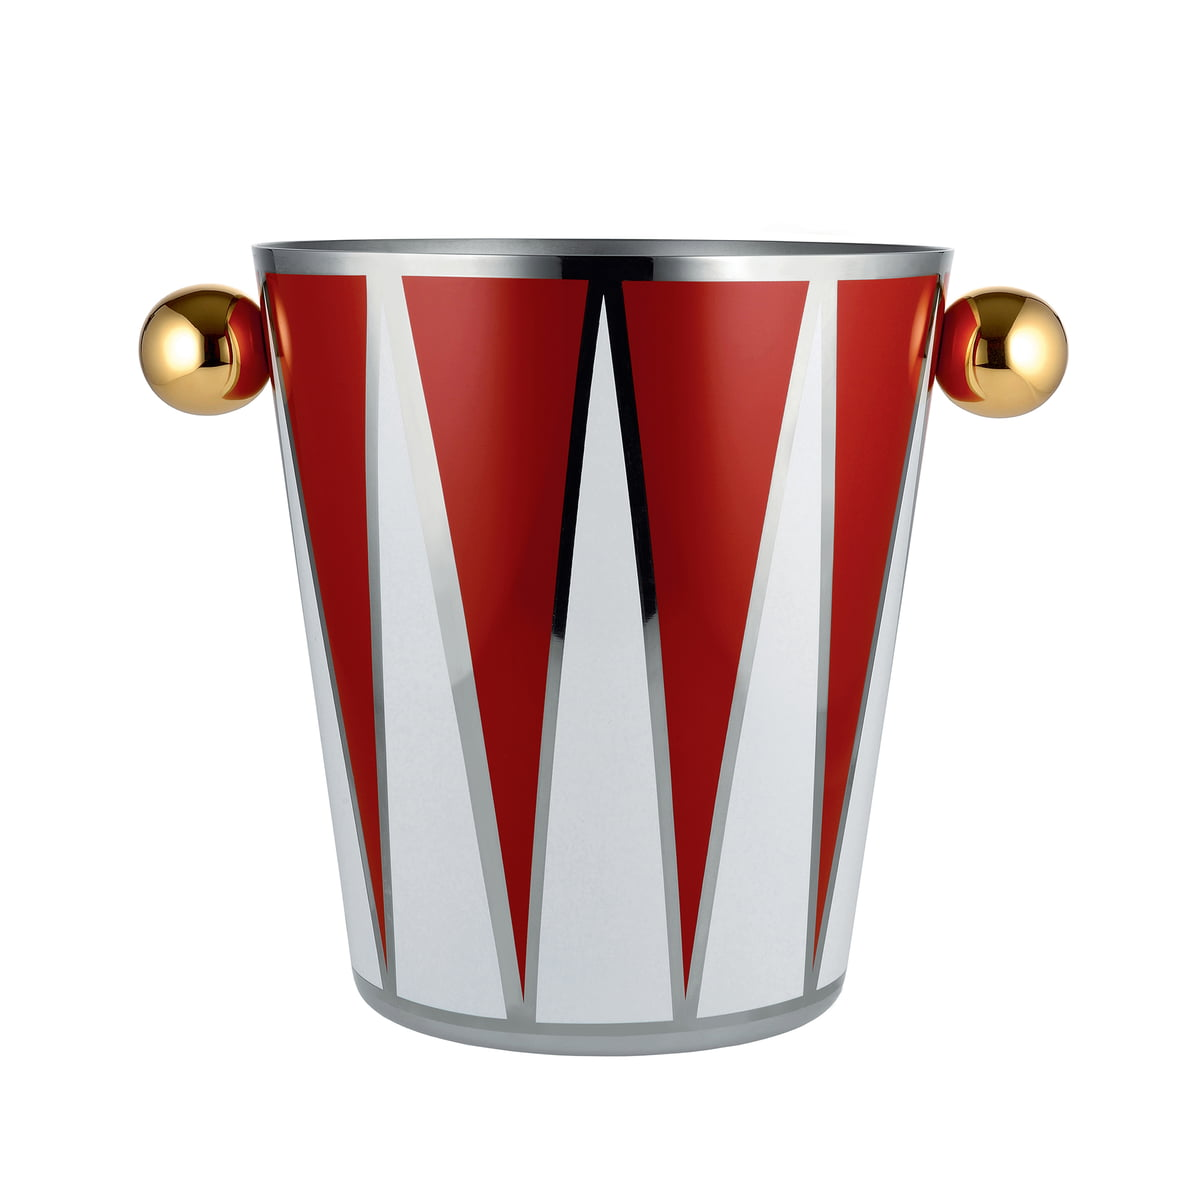 Room Cooler Circus Wine Coolers By Alessi In The Shop